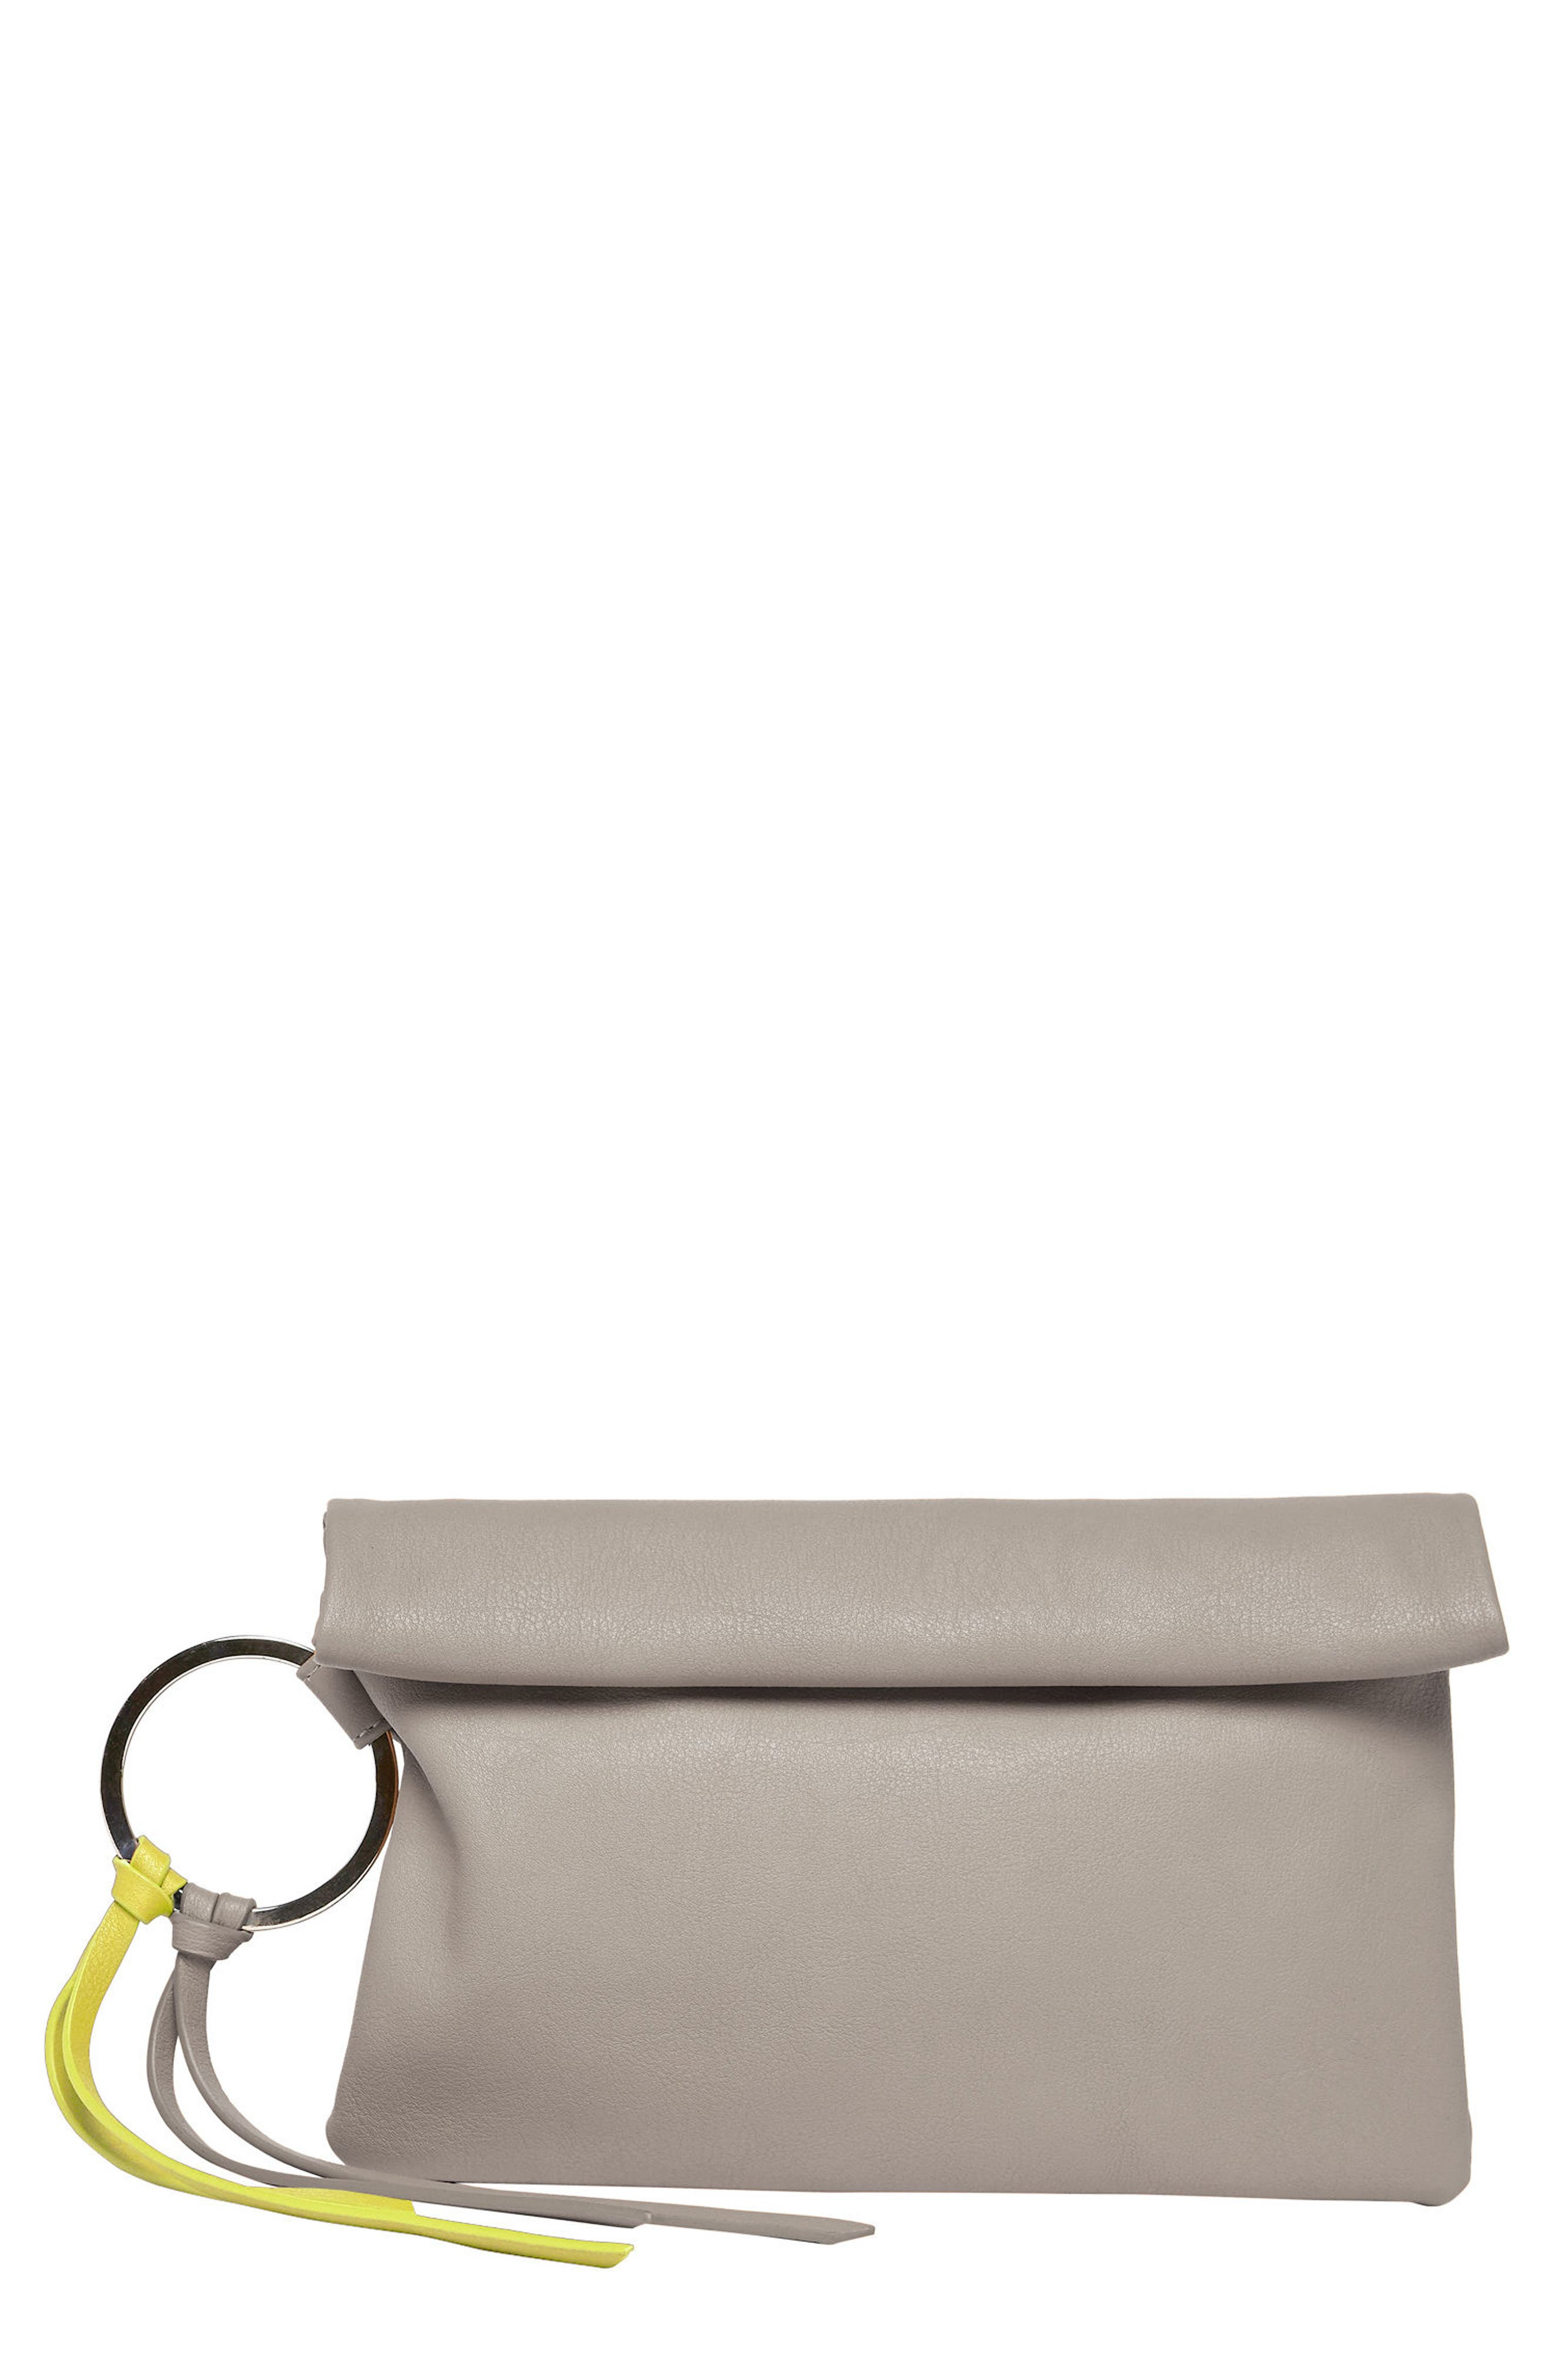 Lost Lover Vegan Leather Clutch,                             Main thumbnail 1, color,                             Grey